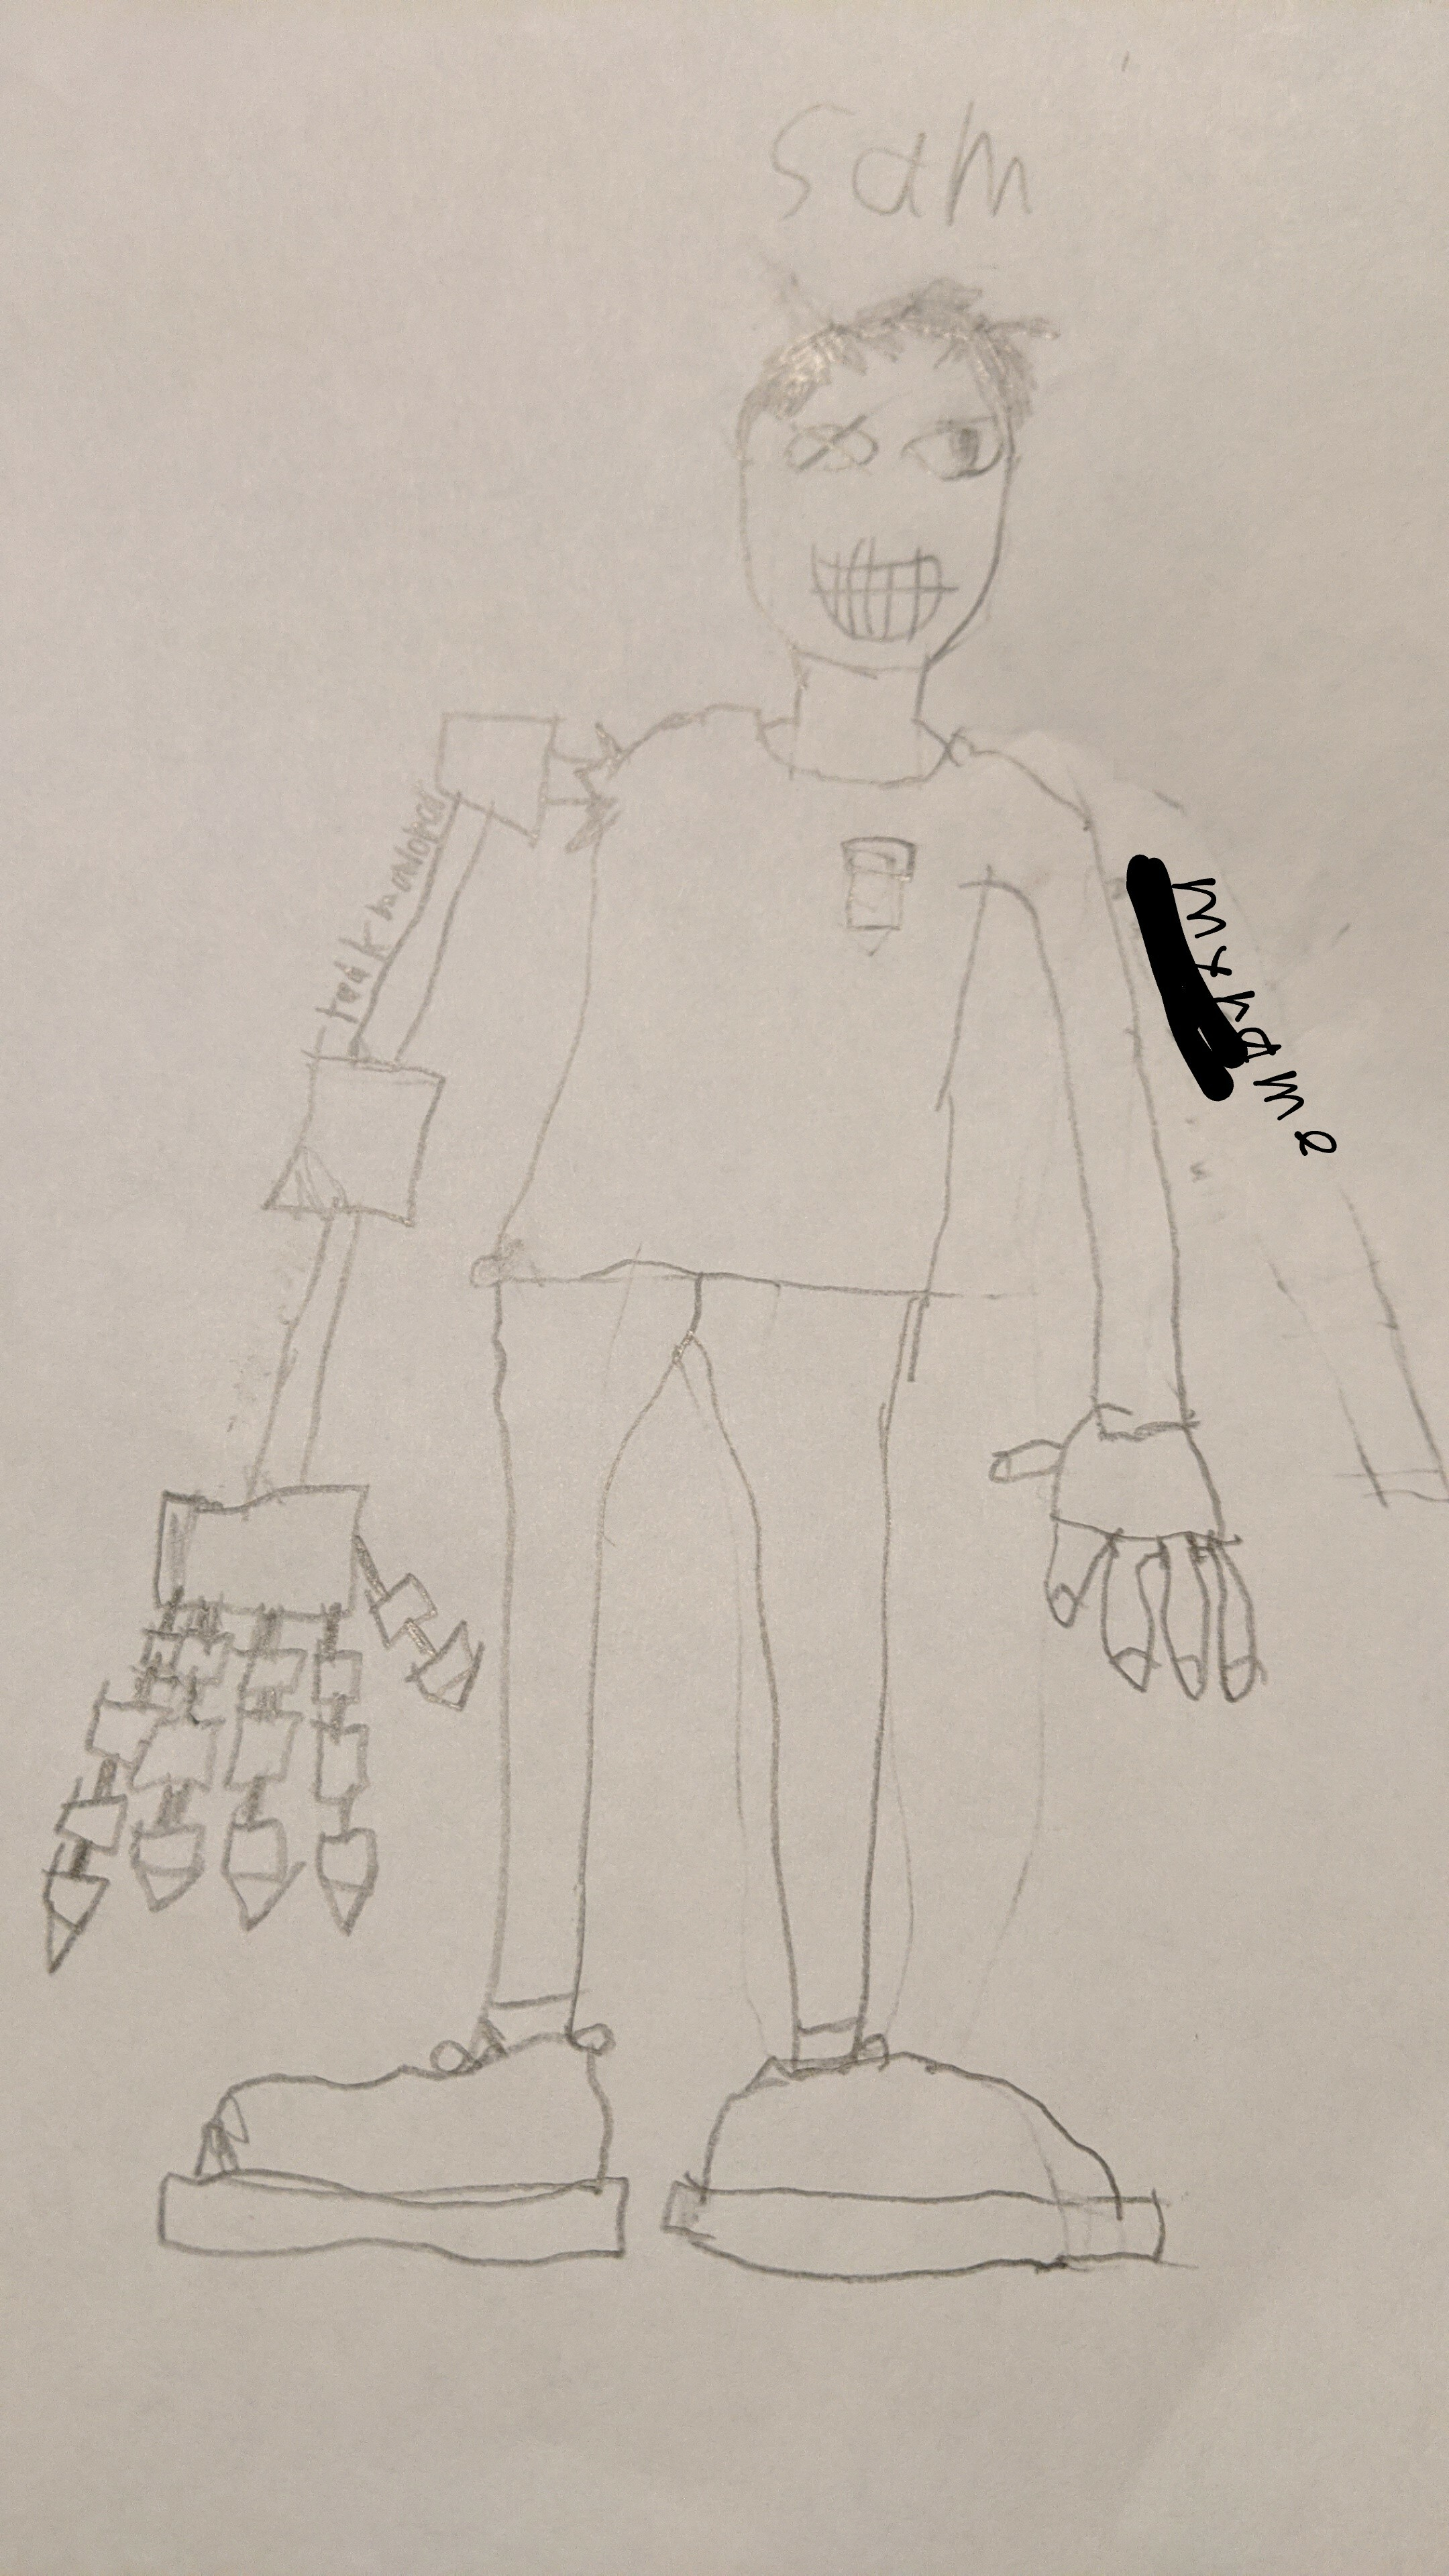 My OC Sam the man with a robotic arm and eye